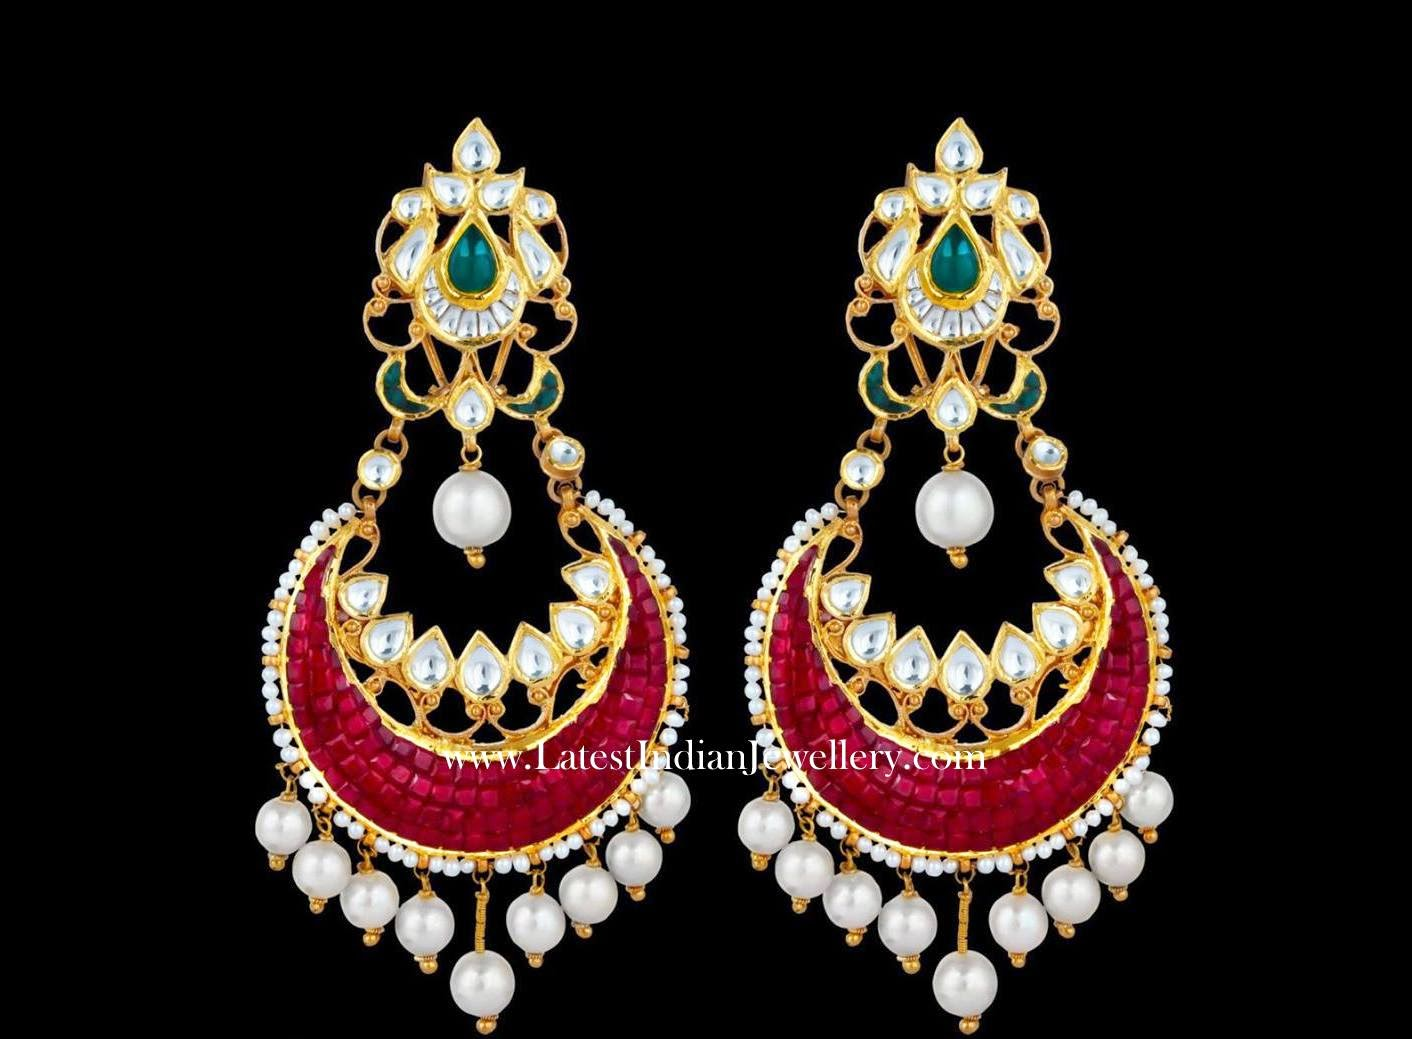 Grand Ruby Chand Bali Earrings